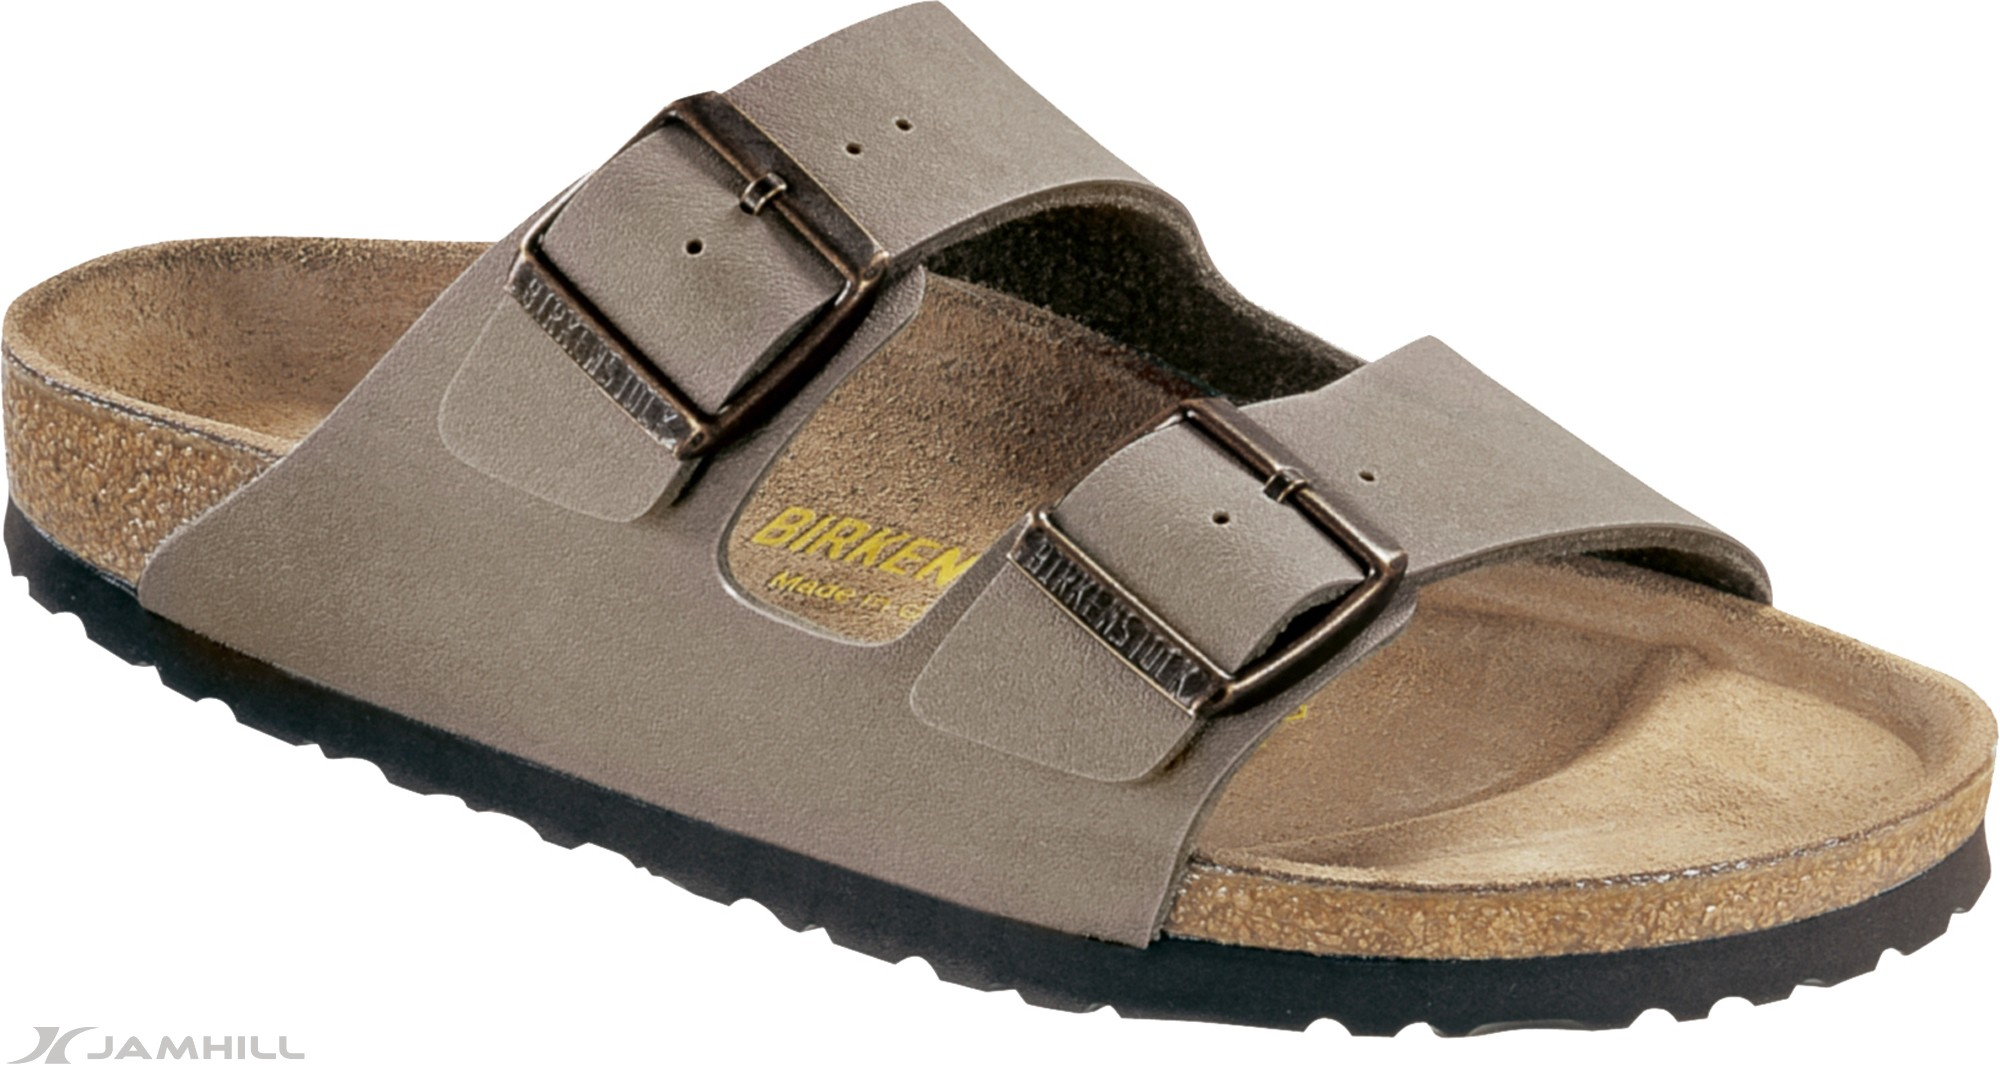 Birkenstock-Arizona-Synthetic-Nubuck-Strap-Narrow-Fit-Sandals-Adjustable-Straps